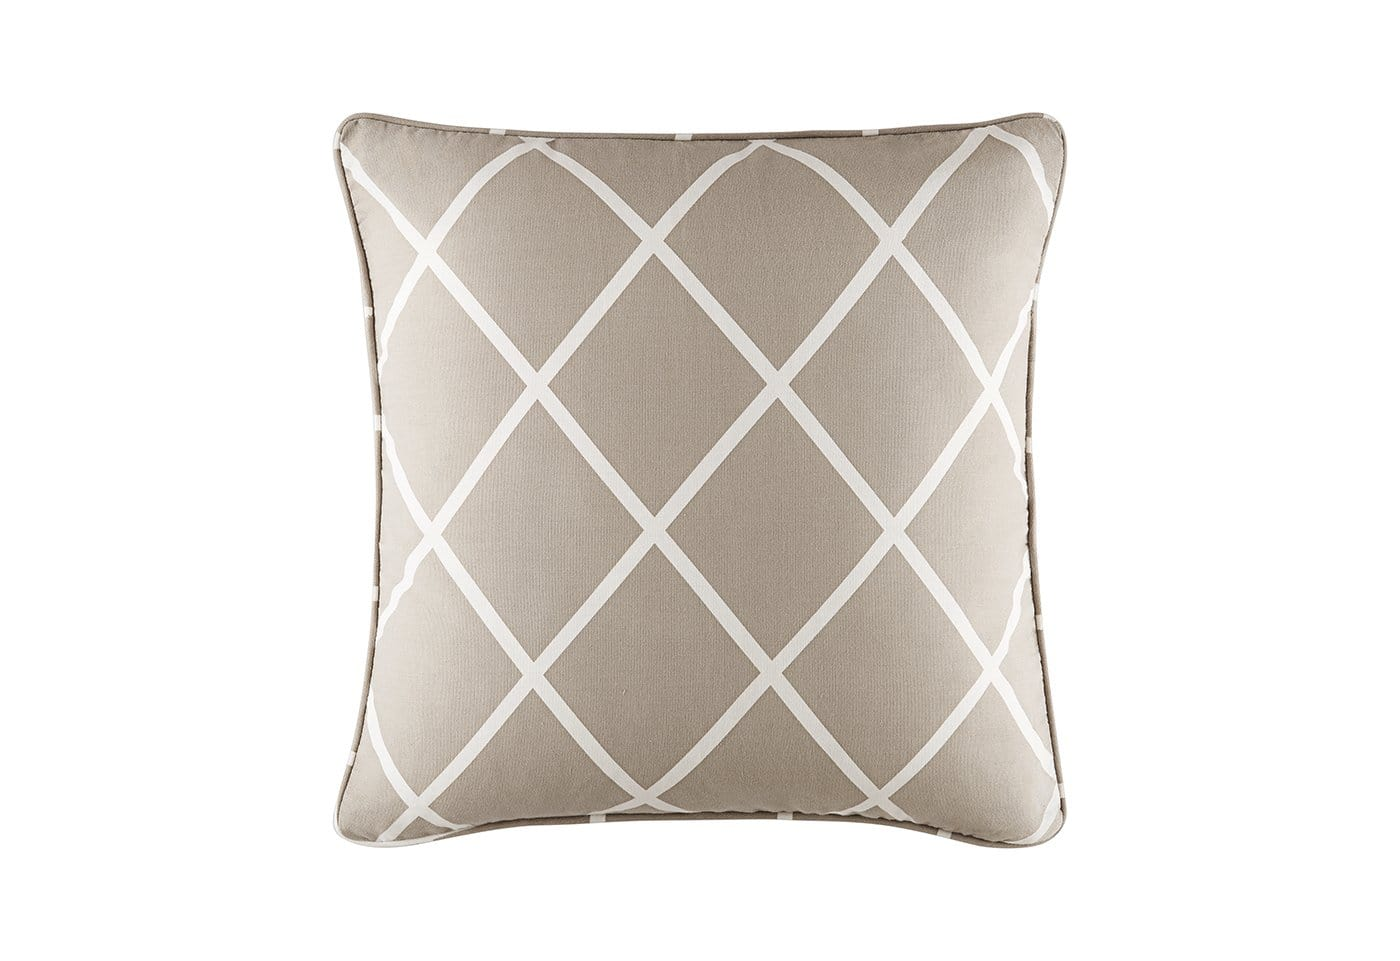 Lattice 18 Inch Square Coordinating Pillow - 18 x 18 / Tan